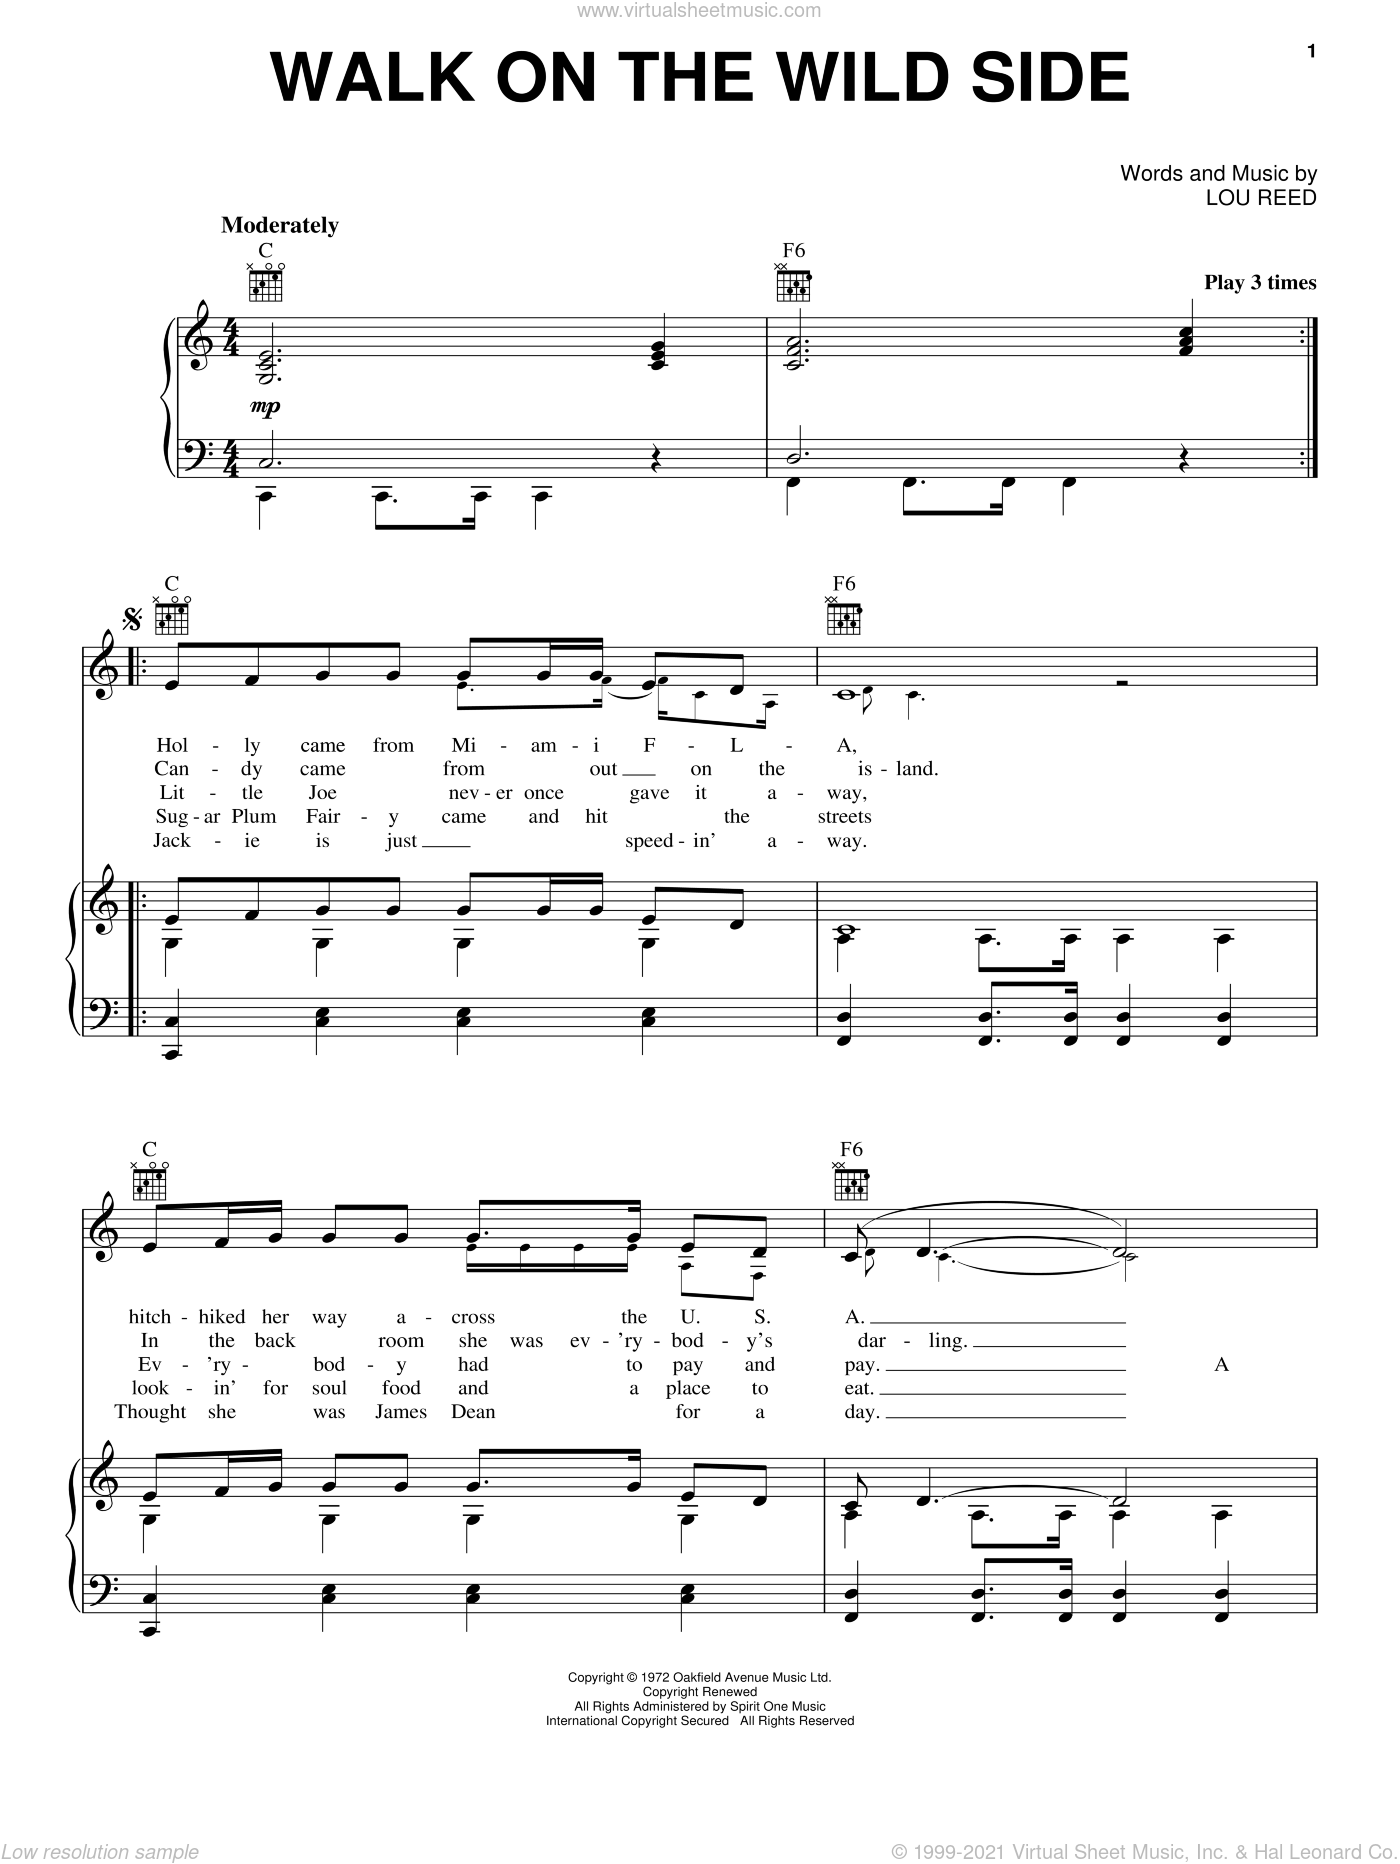 Walk On The Wild Side sheet music for voice, piano or guitar by Lou Reed